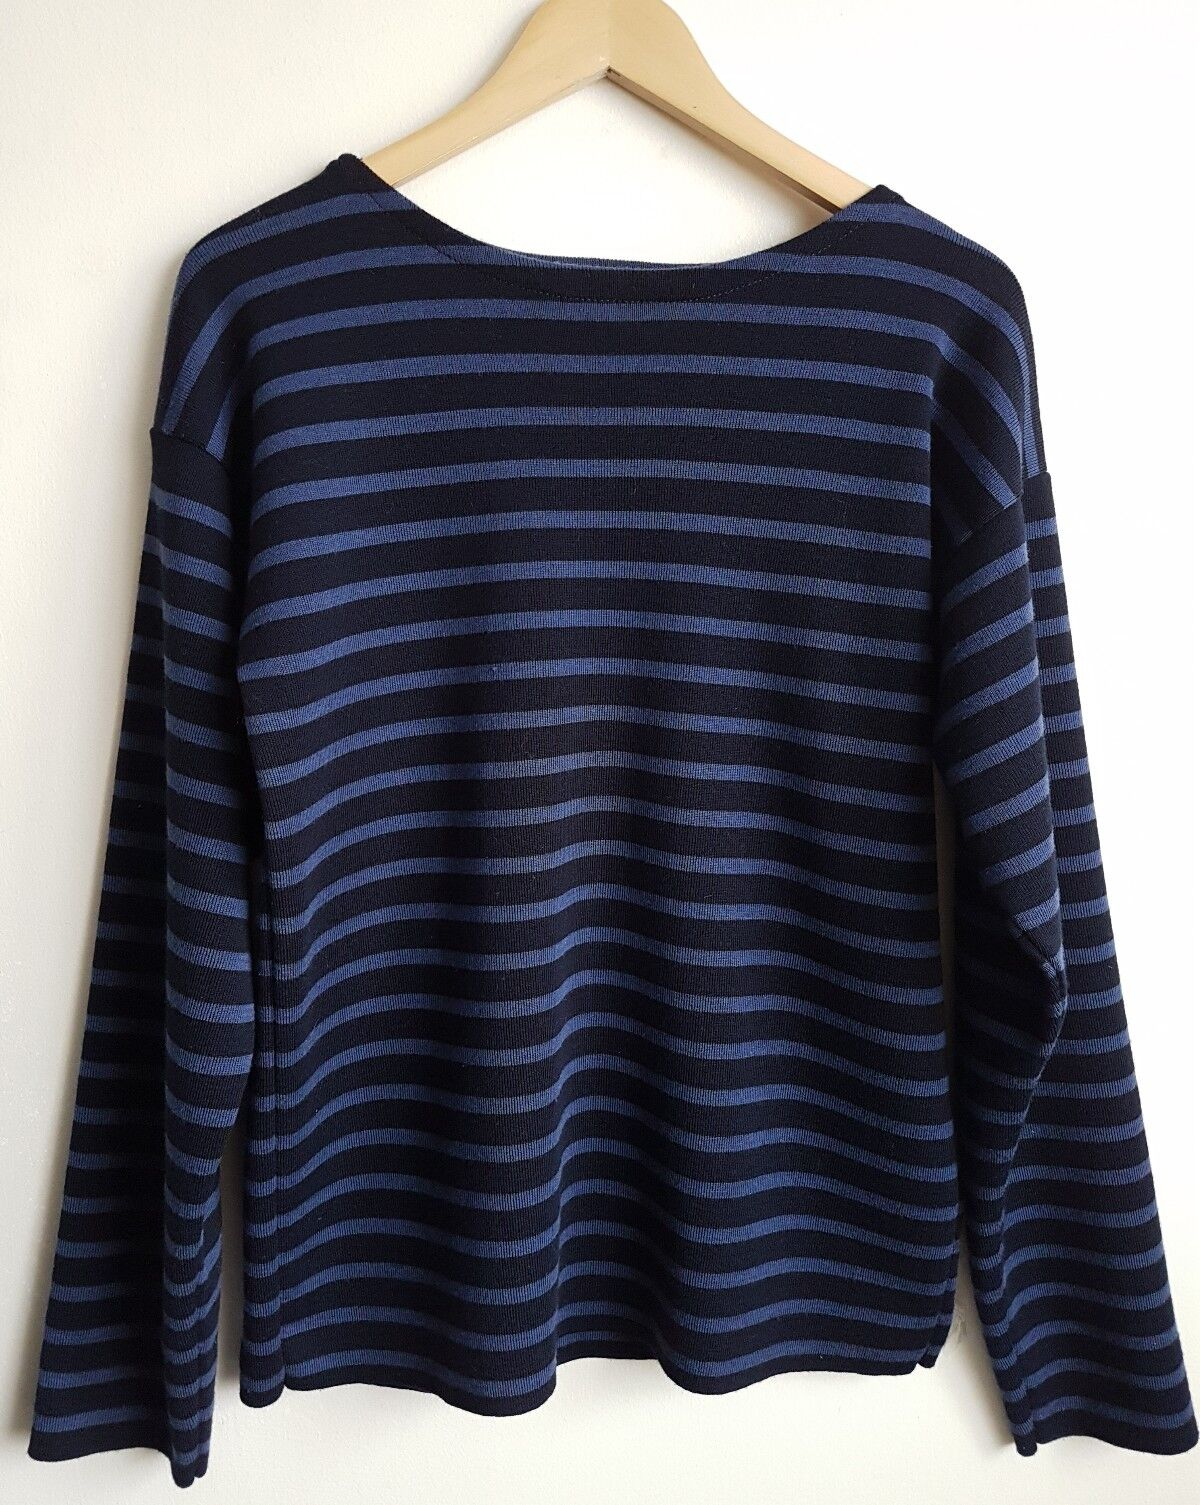 MHL MARGARET HOWELL MENS NAUTICAL JUMPER TOP SIZE S